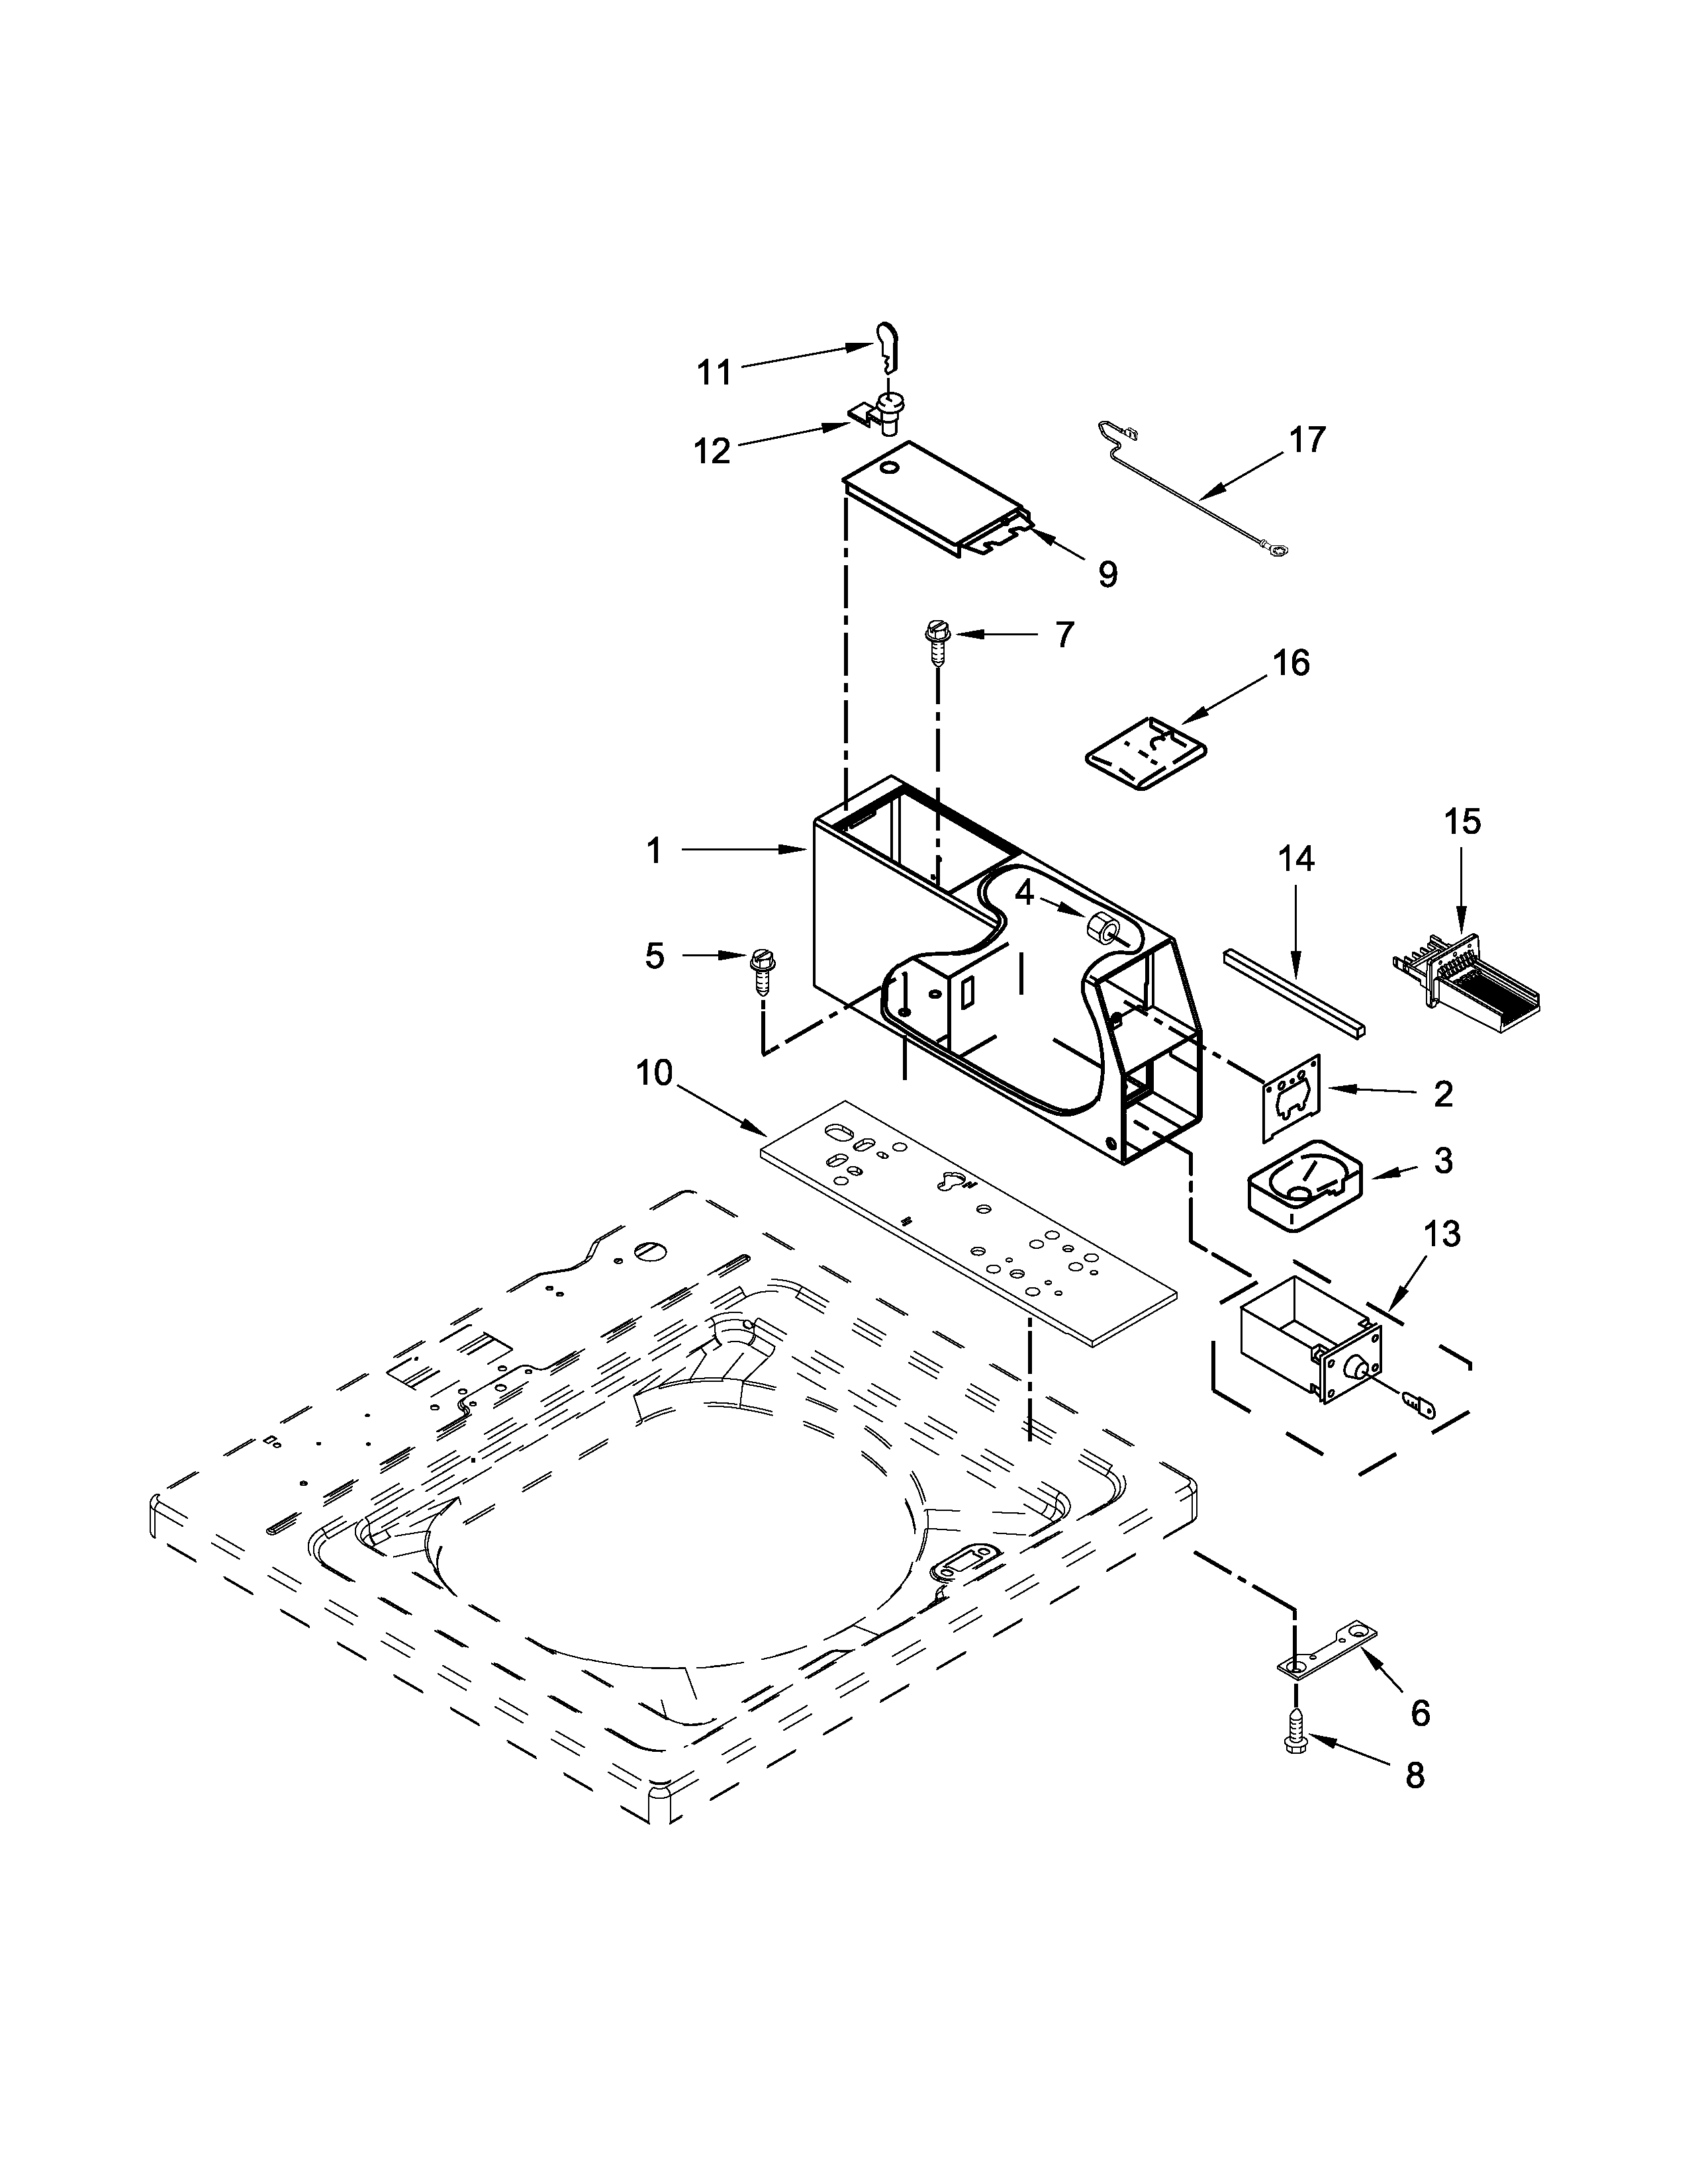 Whirlpool CAE2743BQ0 meter case parts diagram